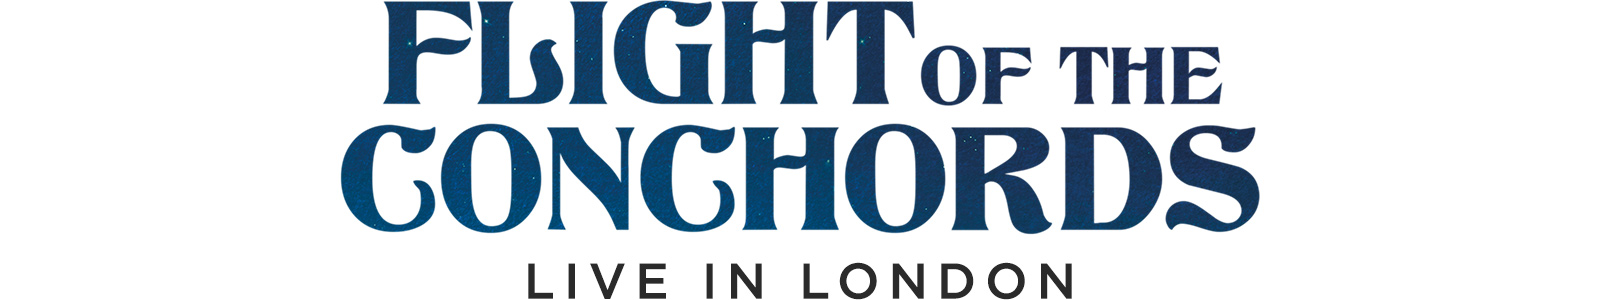 flight of the conchords live in london logo